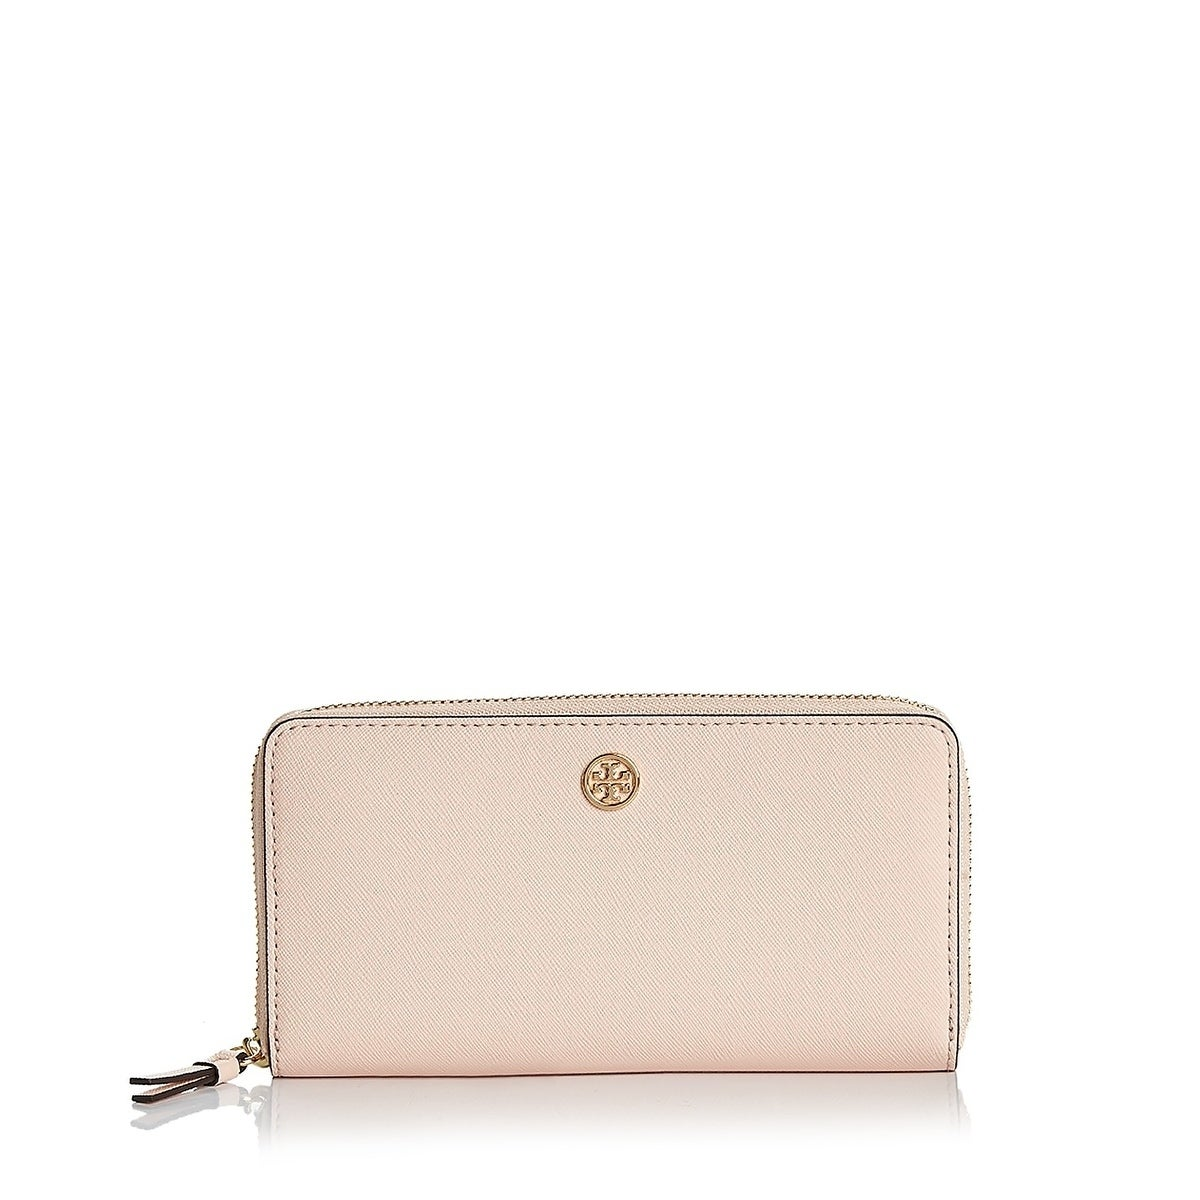 77286981817a Shop Tory Burch Robinson Zip Continental Wallet Pale Apricot - Free ...